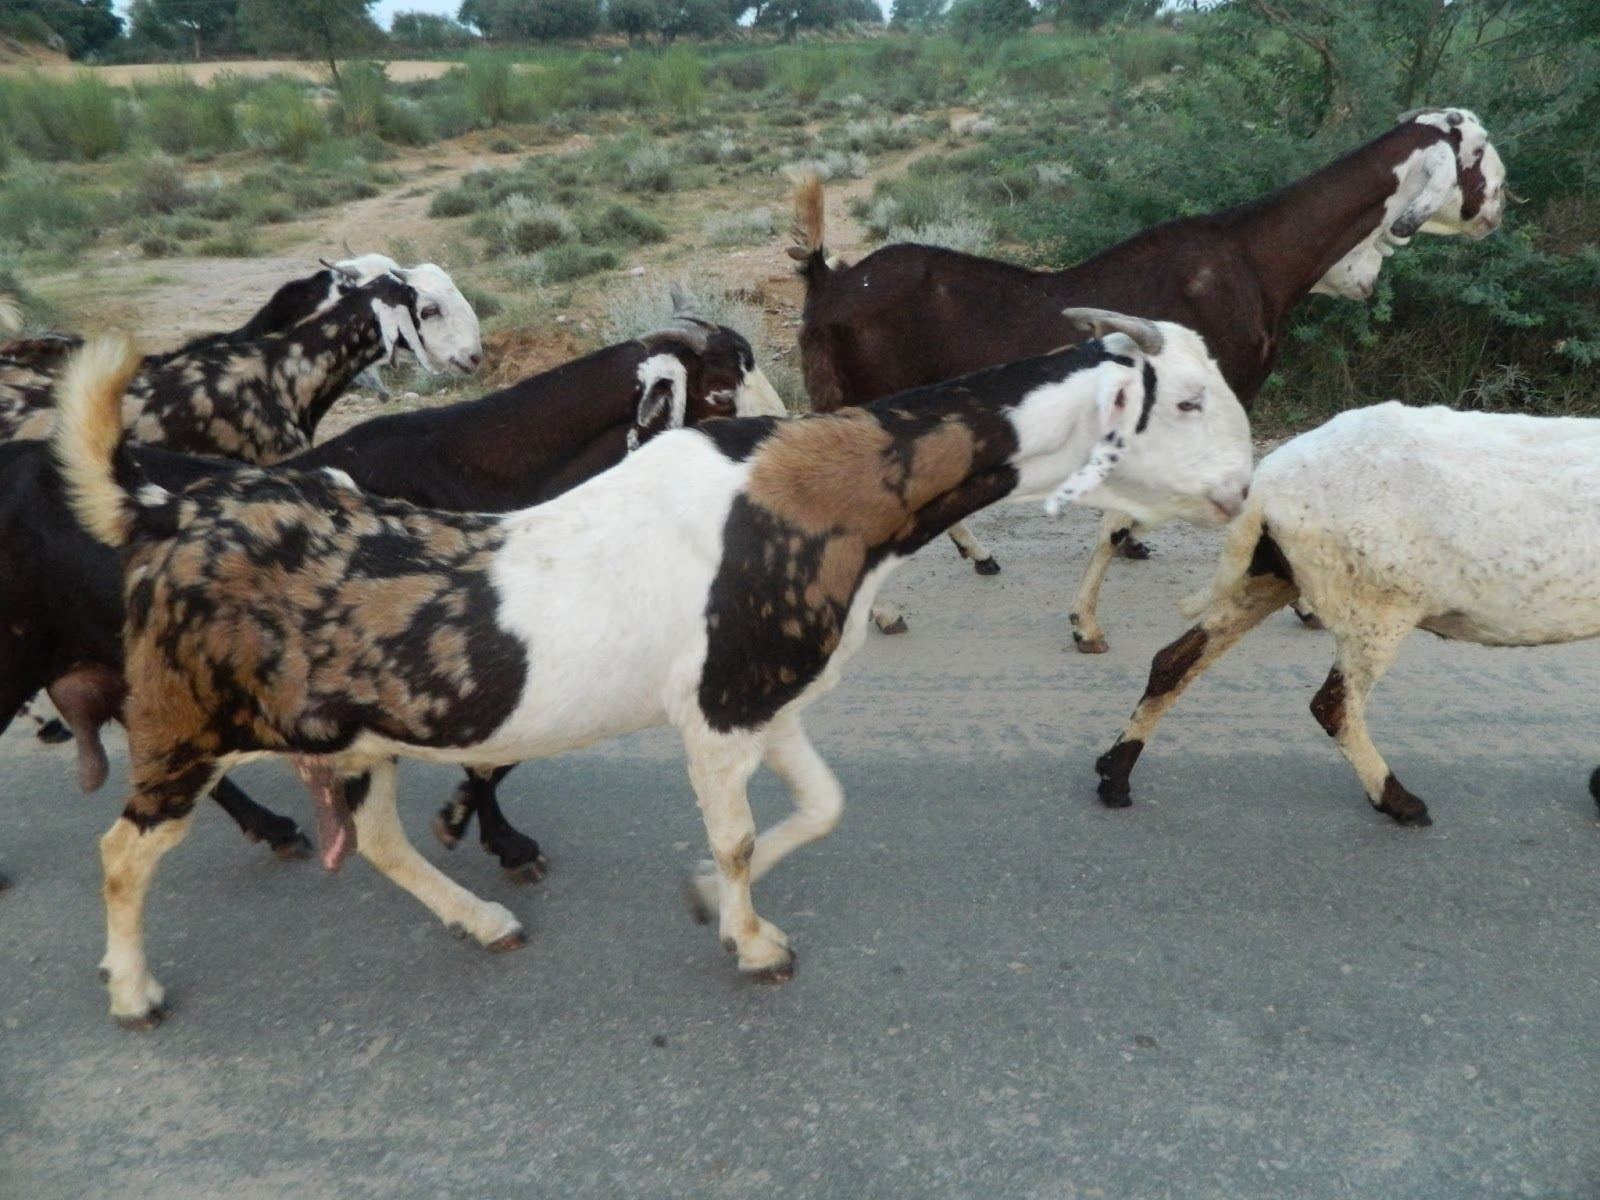 which goat breed i should select to start a goat farm